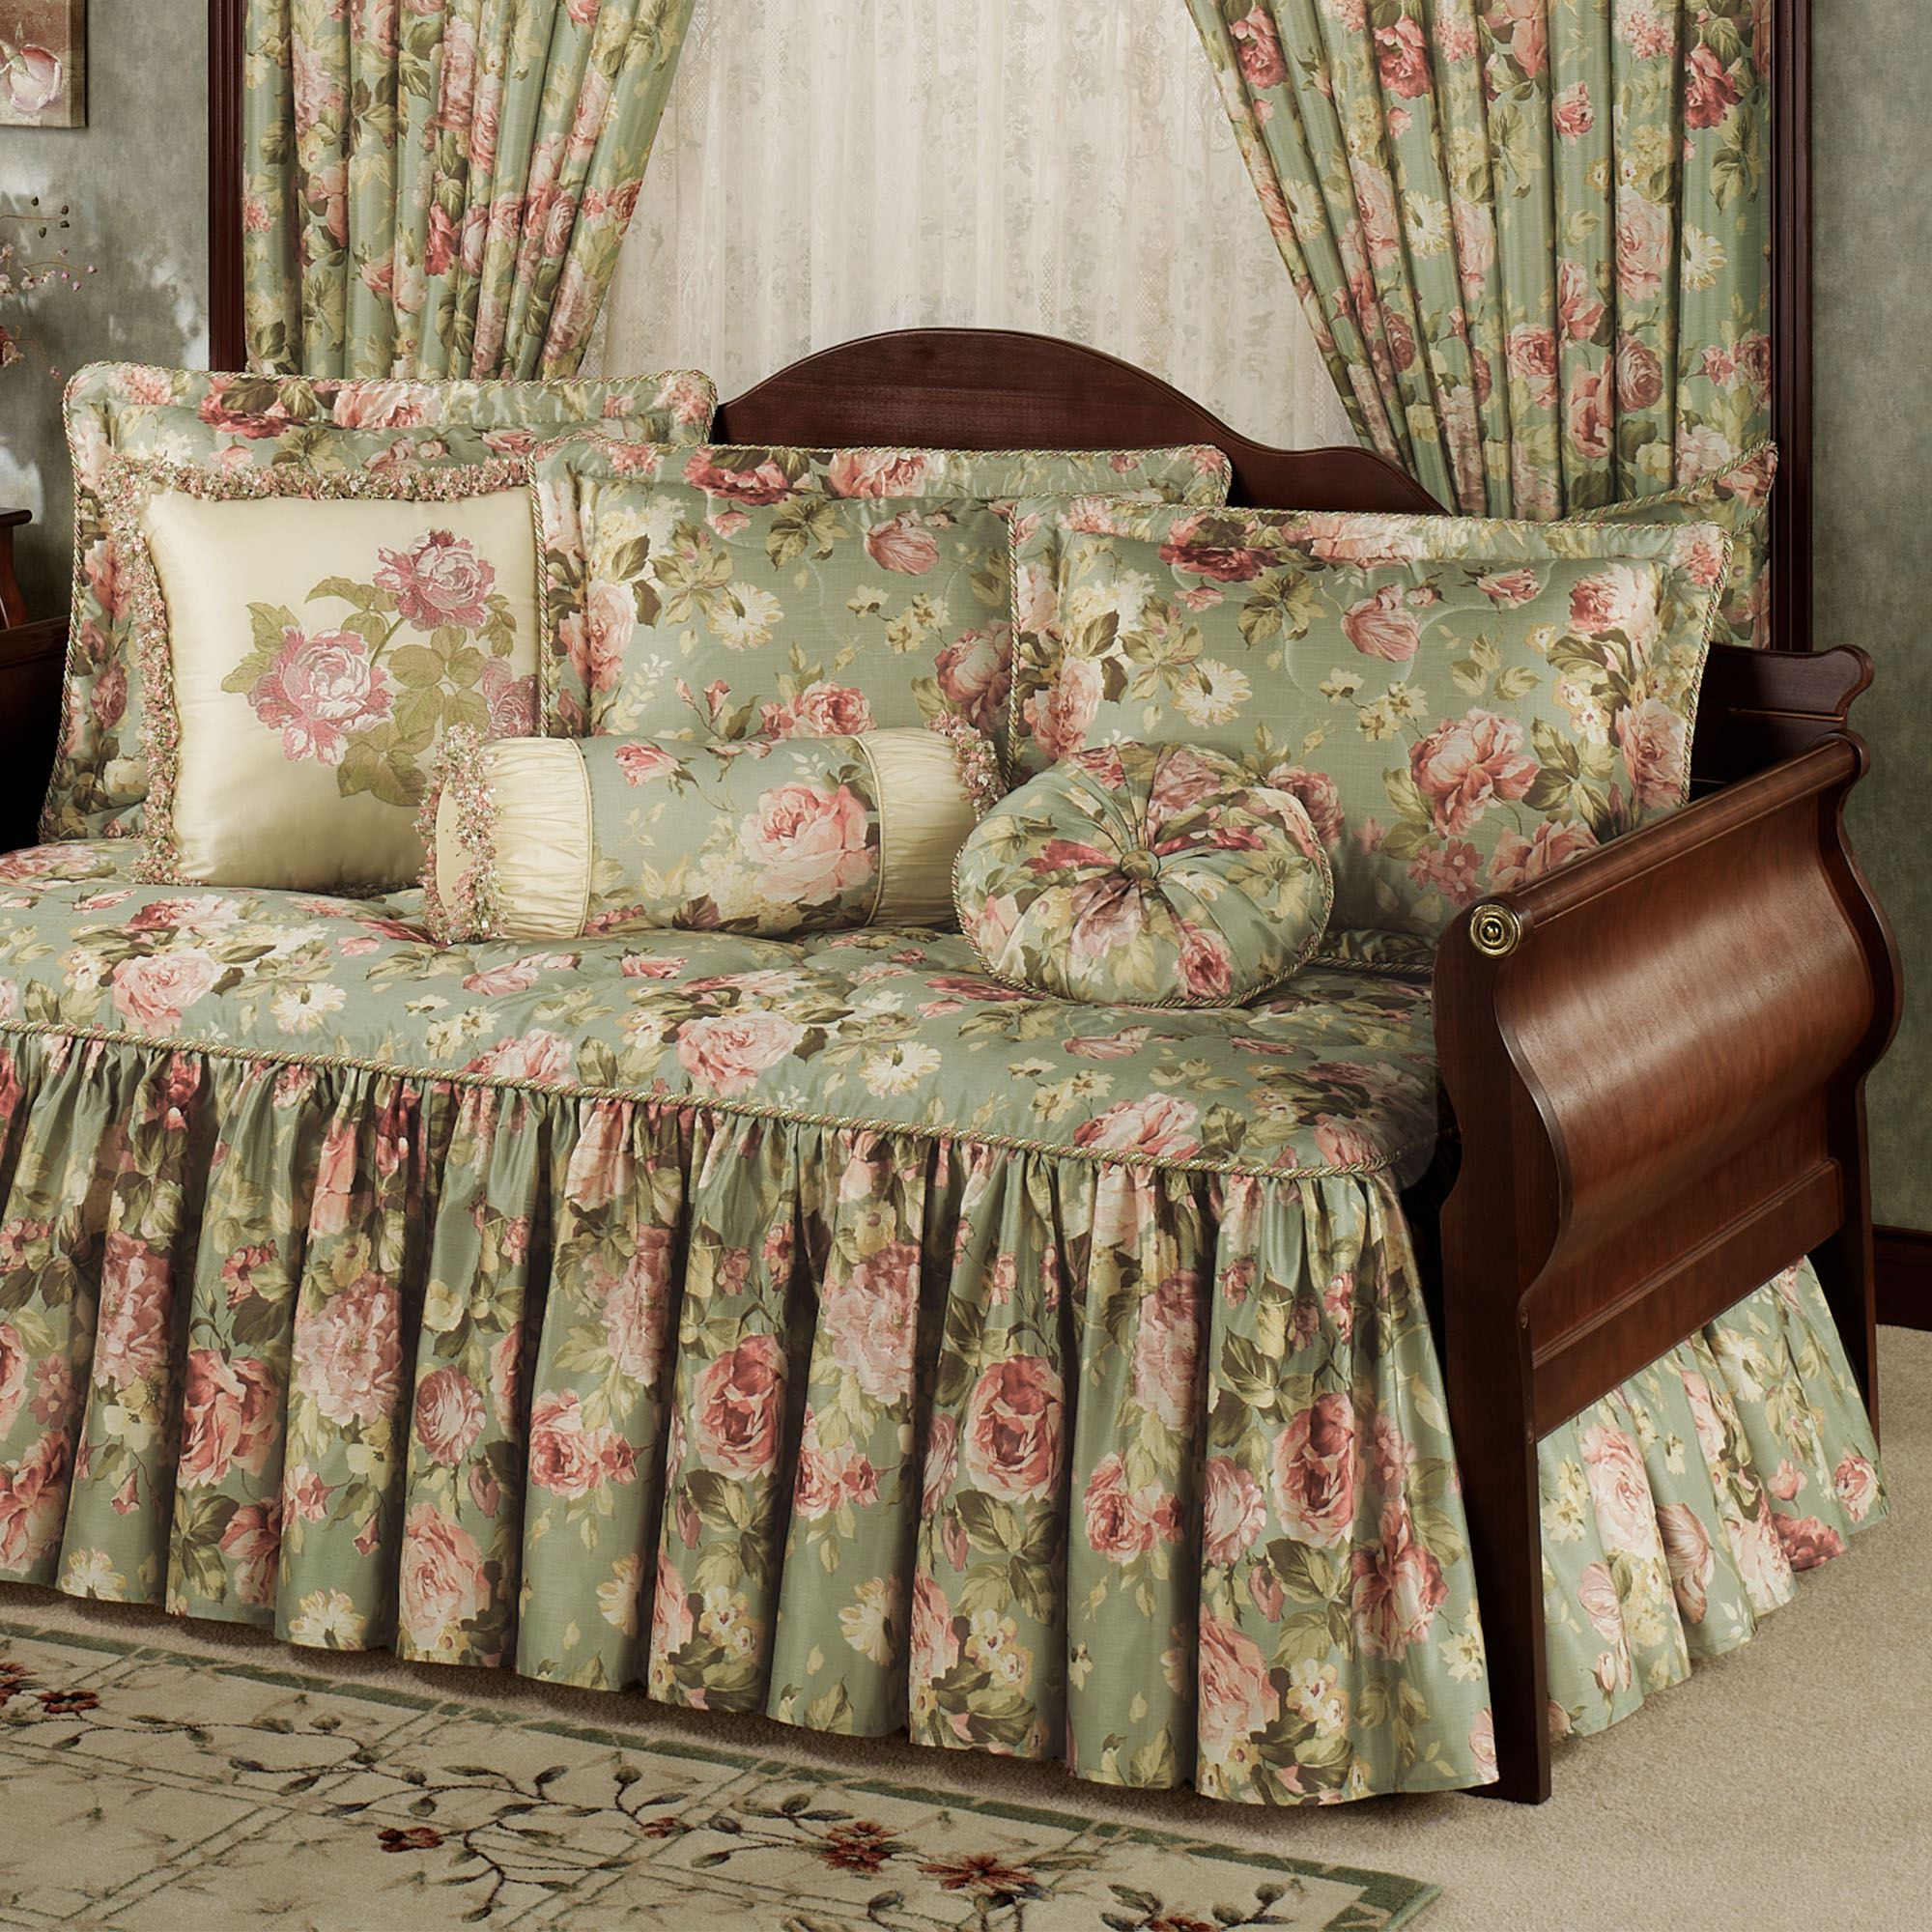 Summerfield Floral Daybed Bedding